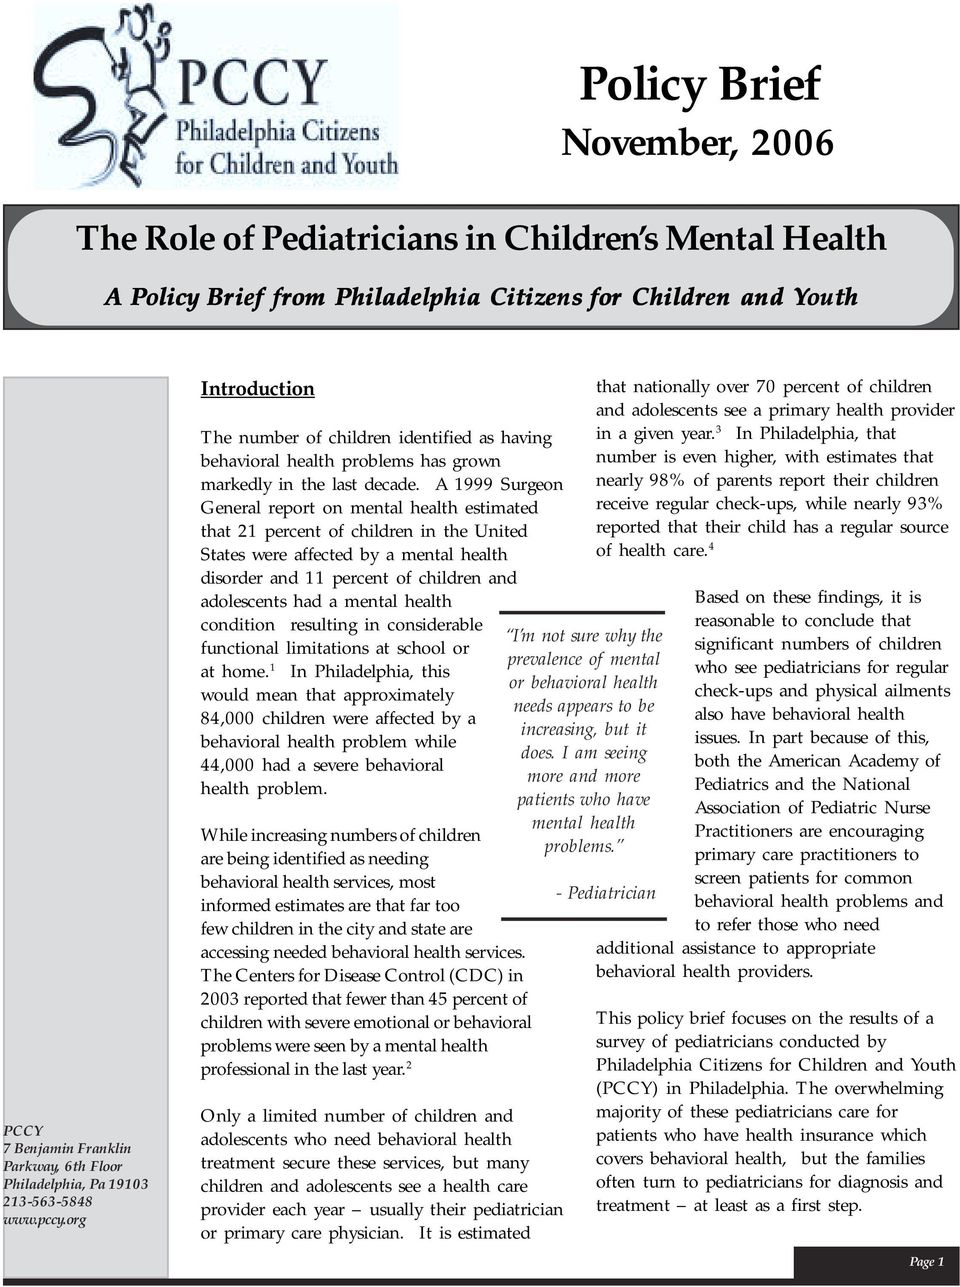 A 1999 Surgeon General report on mental health estimated that 21 percent of children in the United States were affected by a mental health disorder and 11 percent of children and adolescents had a